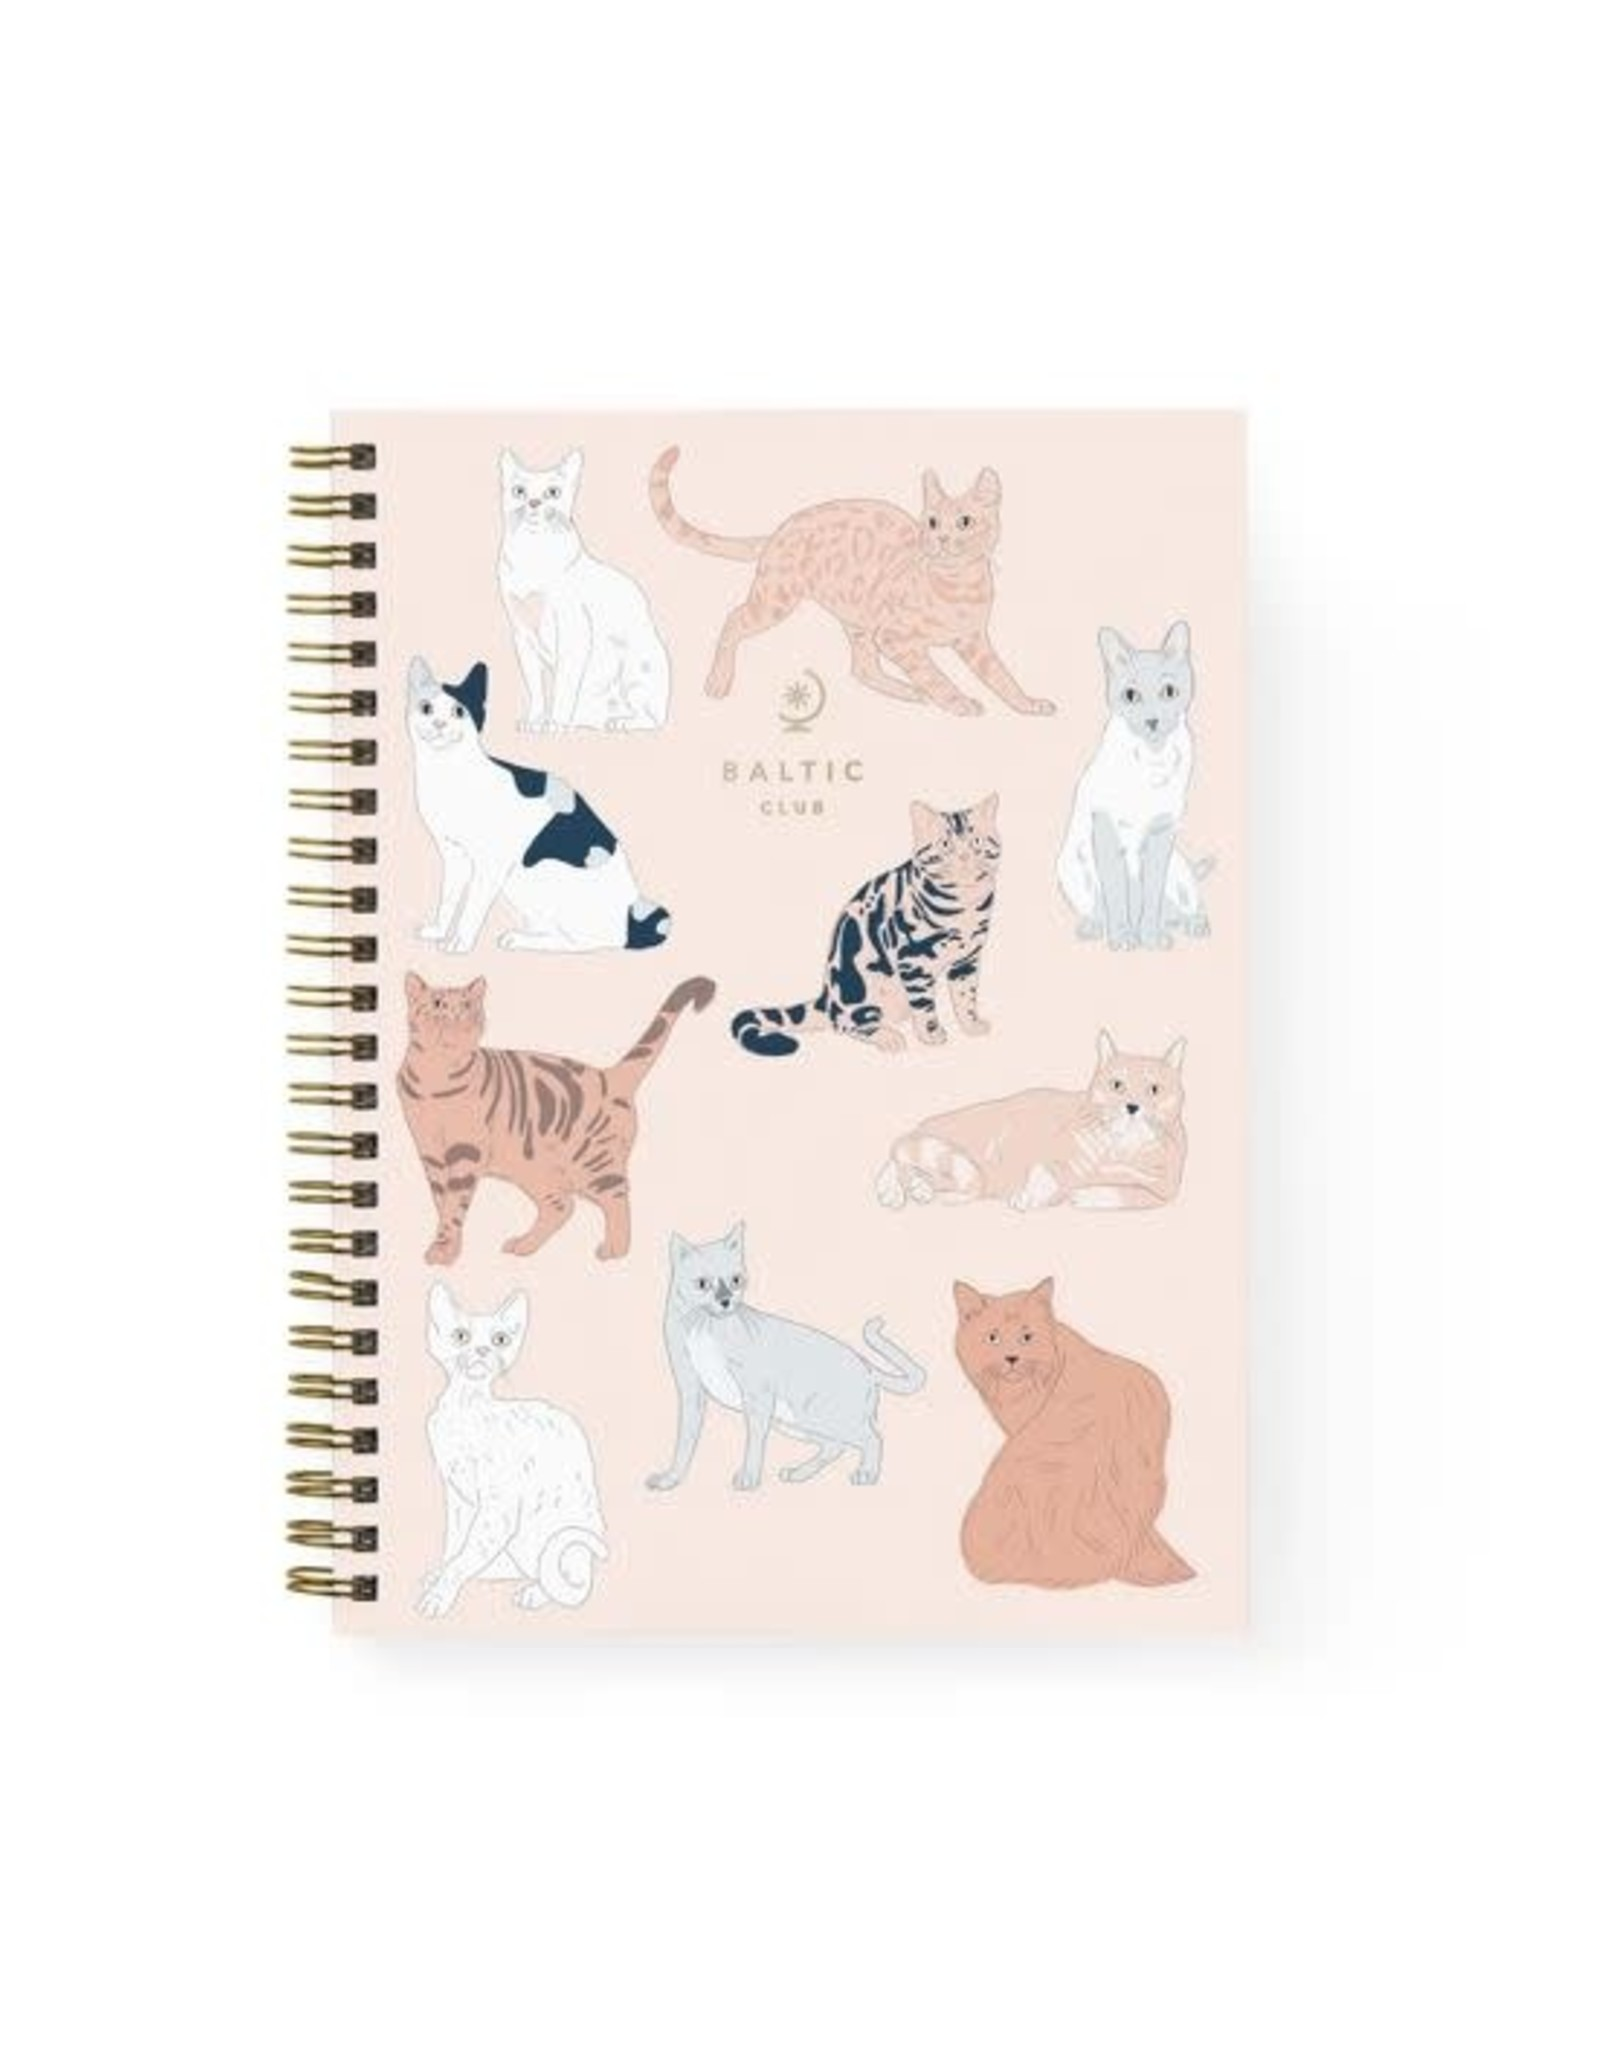 Baltic Club Cats Spiral Notebook - Blank Pages